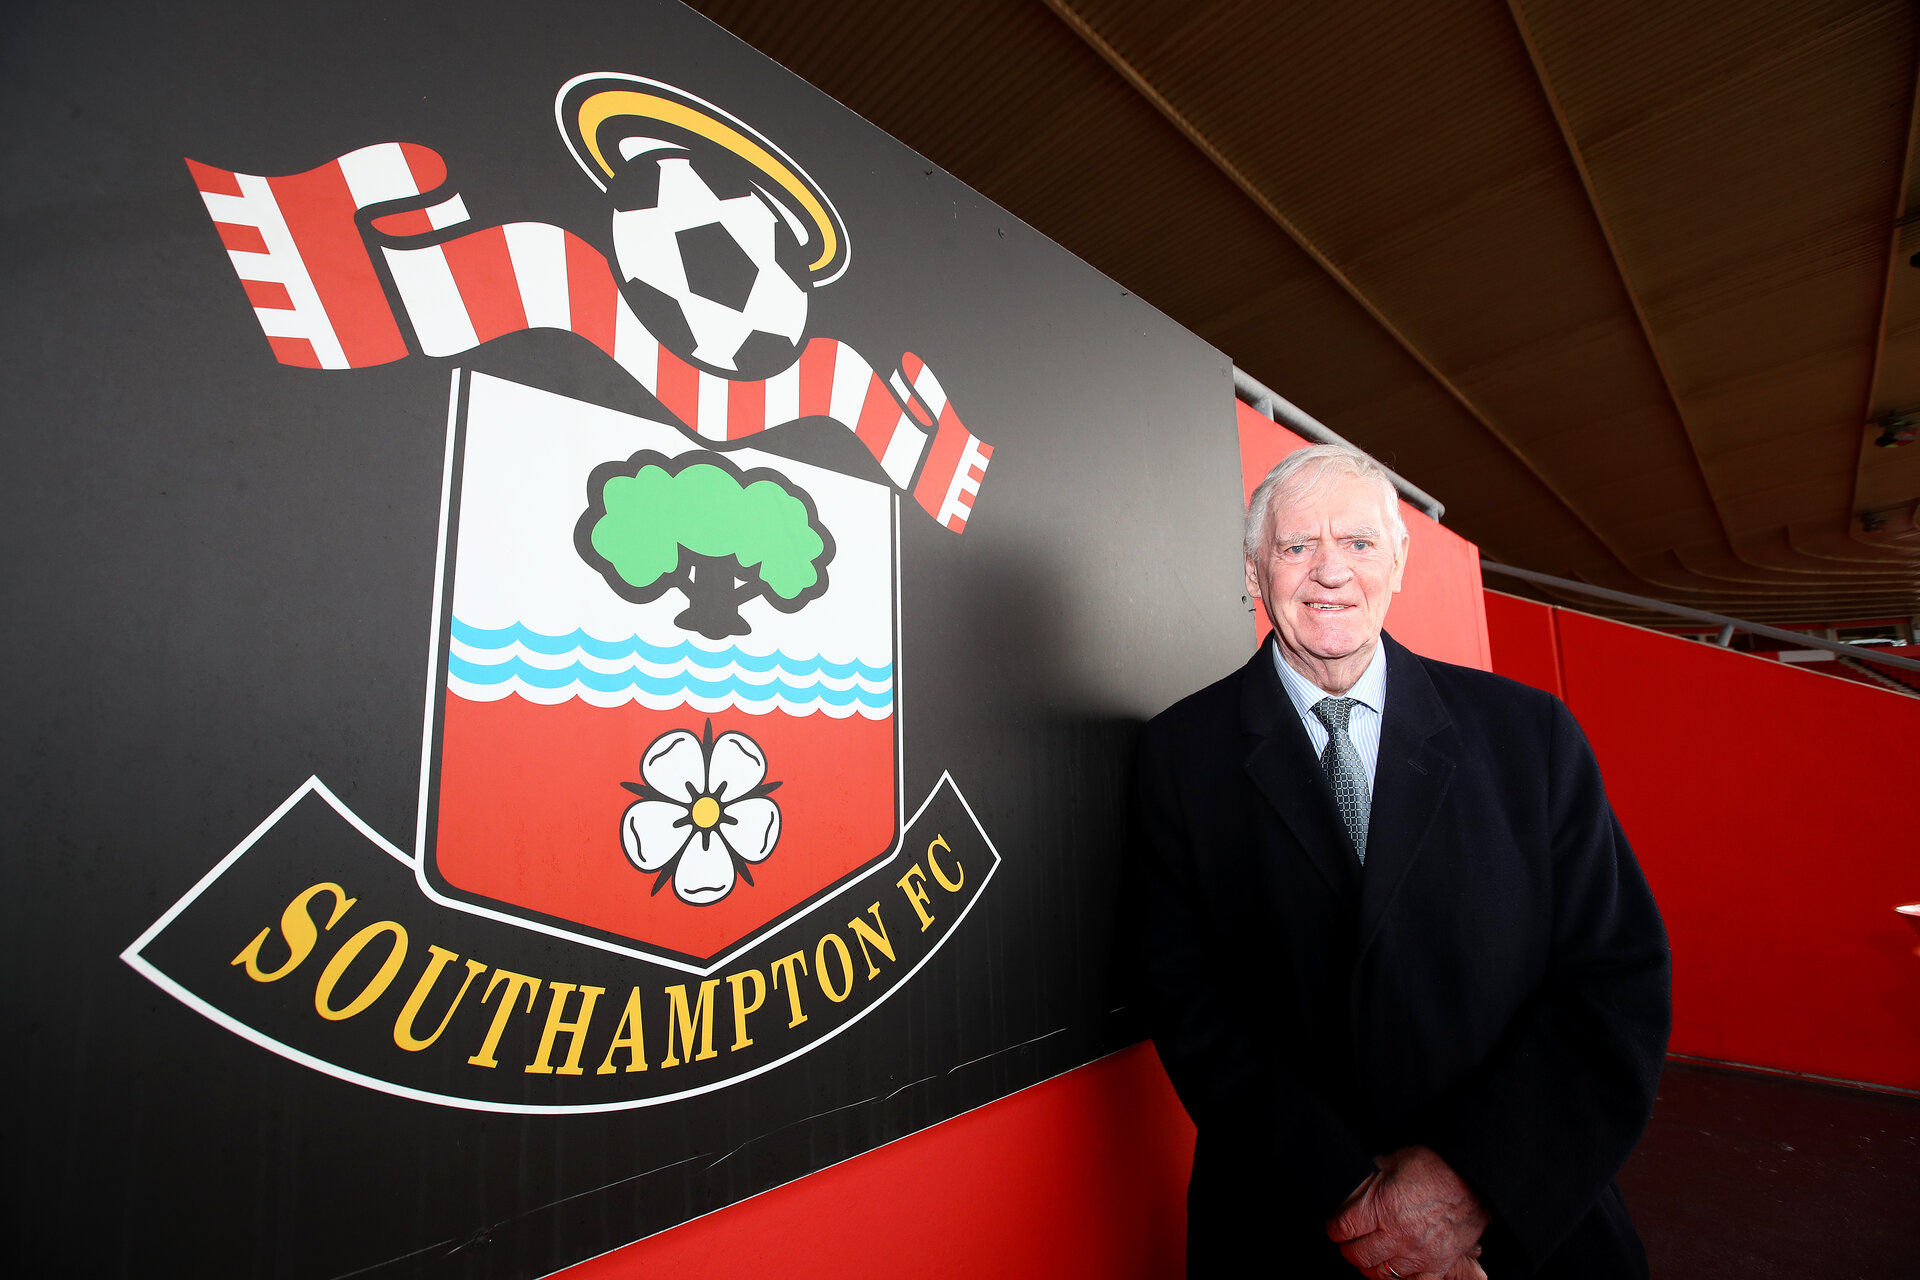 SOUTHAMPTON, ENGLAND - FEBRUARY 22: Lawrie McMenemy ahead of the Premier League match between Southampton FC and Aston Villa at St Mary's Stadium on February 22, 2020 in Southampton, United Kingdom. (Photo by Matt Watson/Southampton FC via Getty Images)